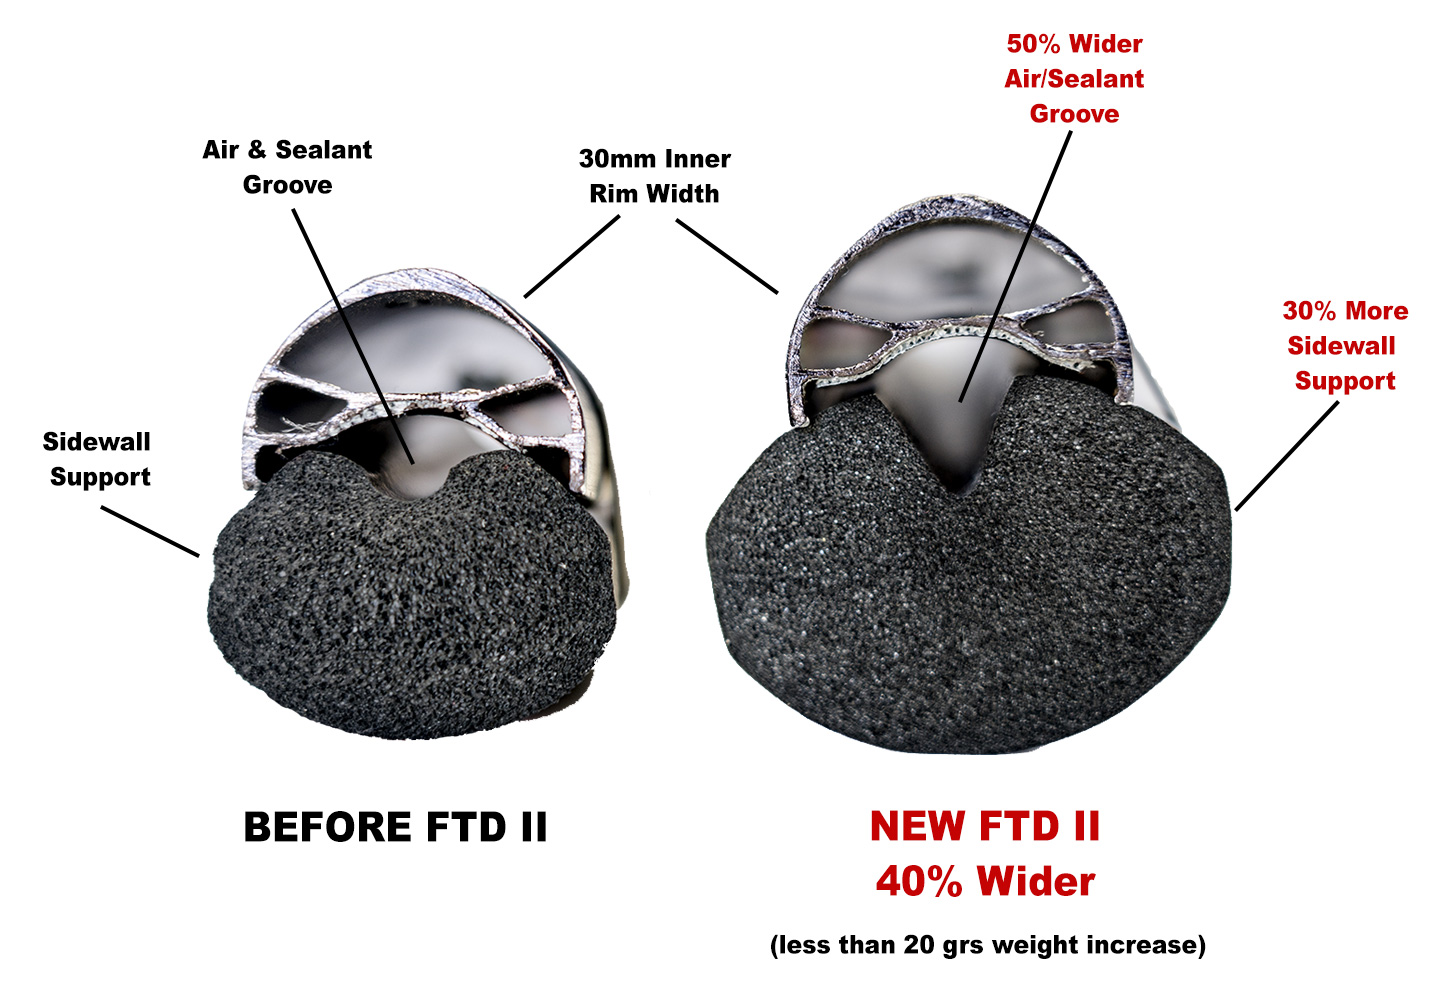 FTD II Comparison